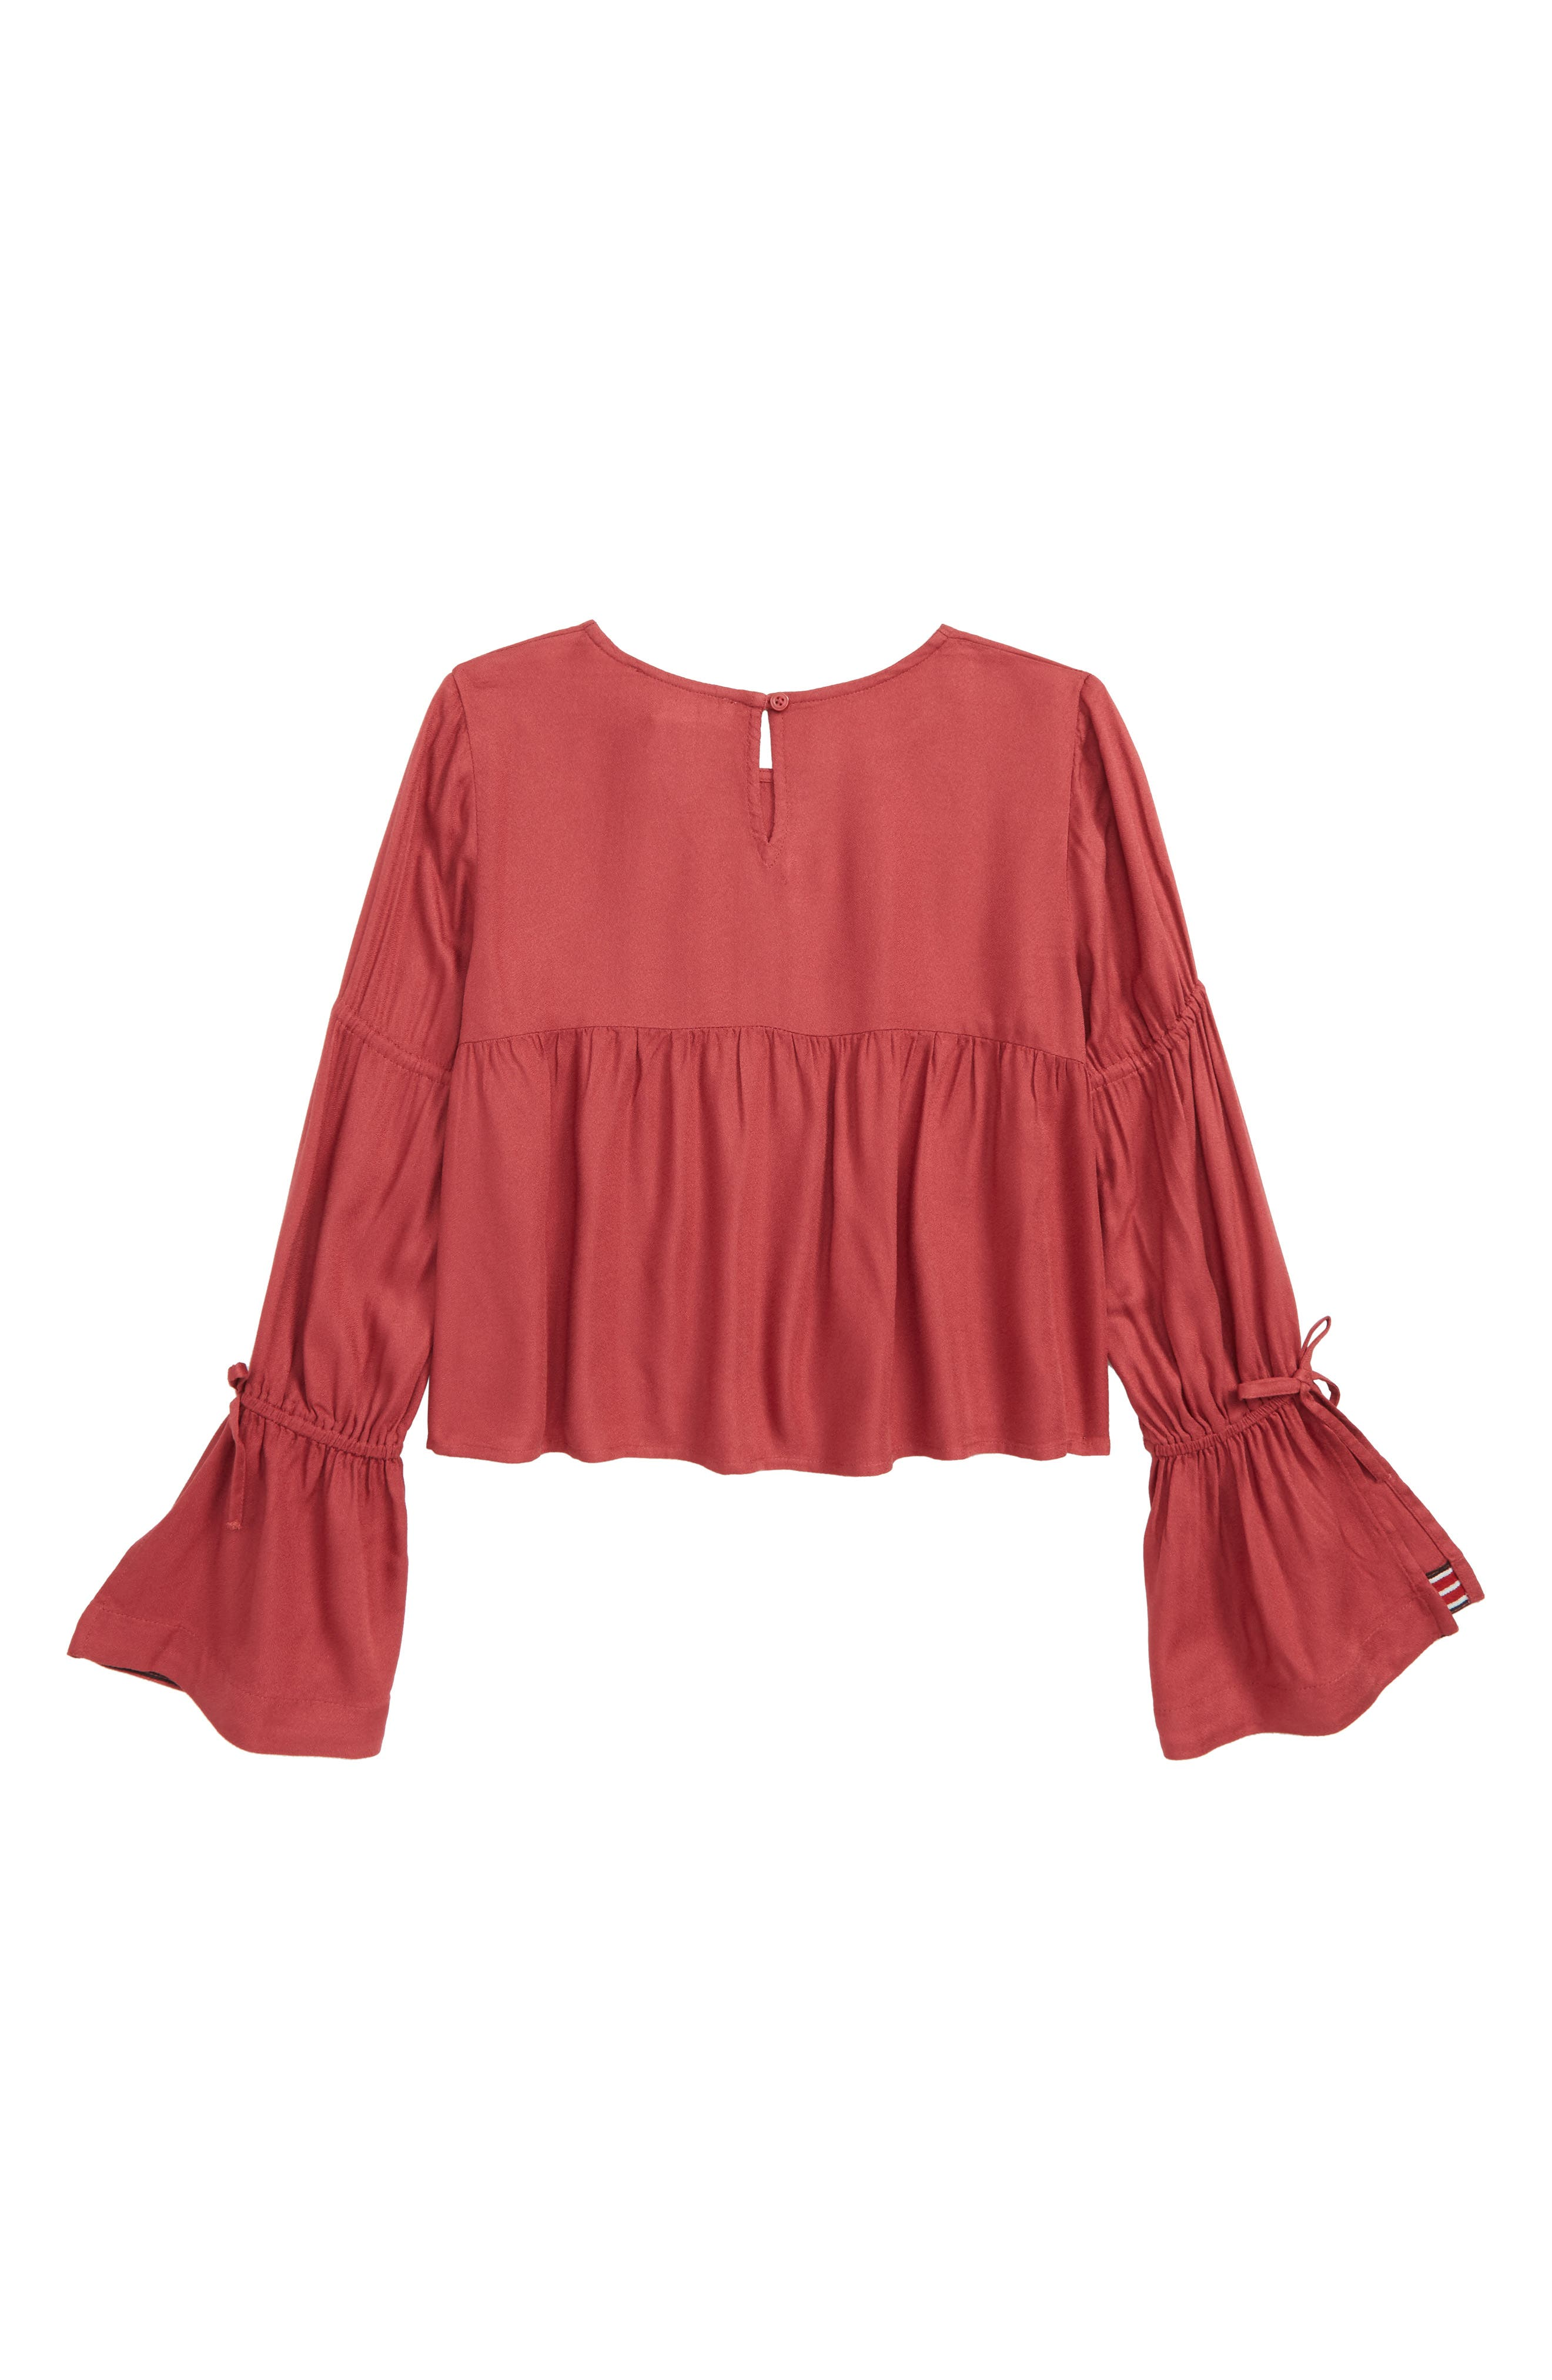 Bell Sleeve Top,                             Alternate thumbnail 2, color,                             RED EARTH